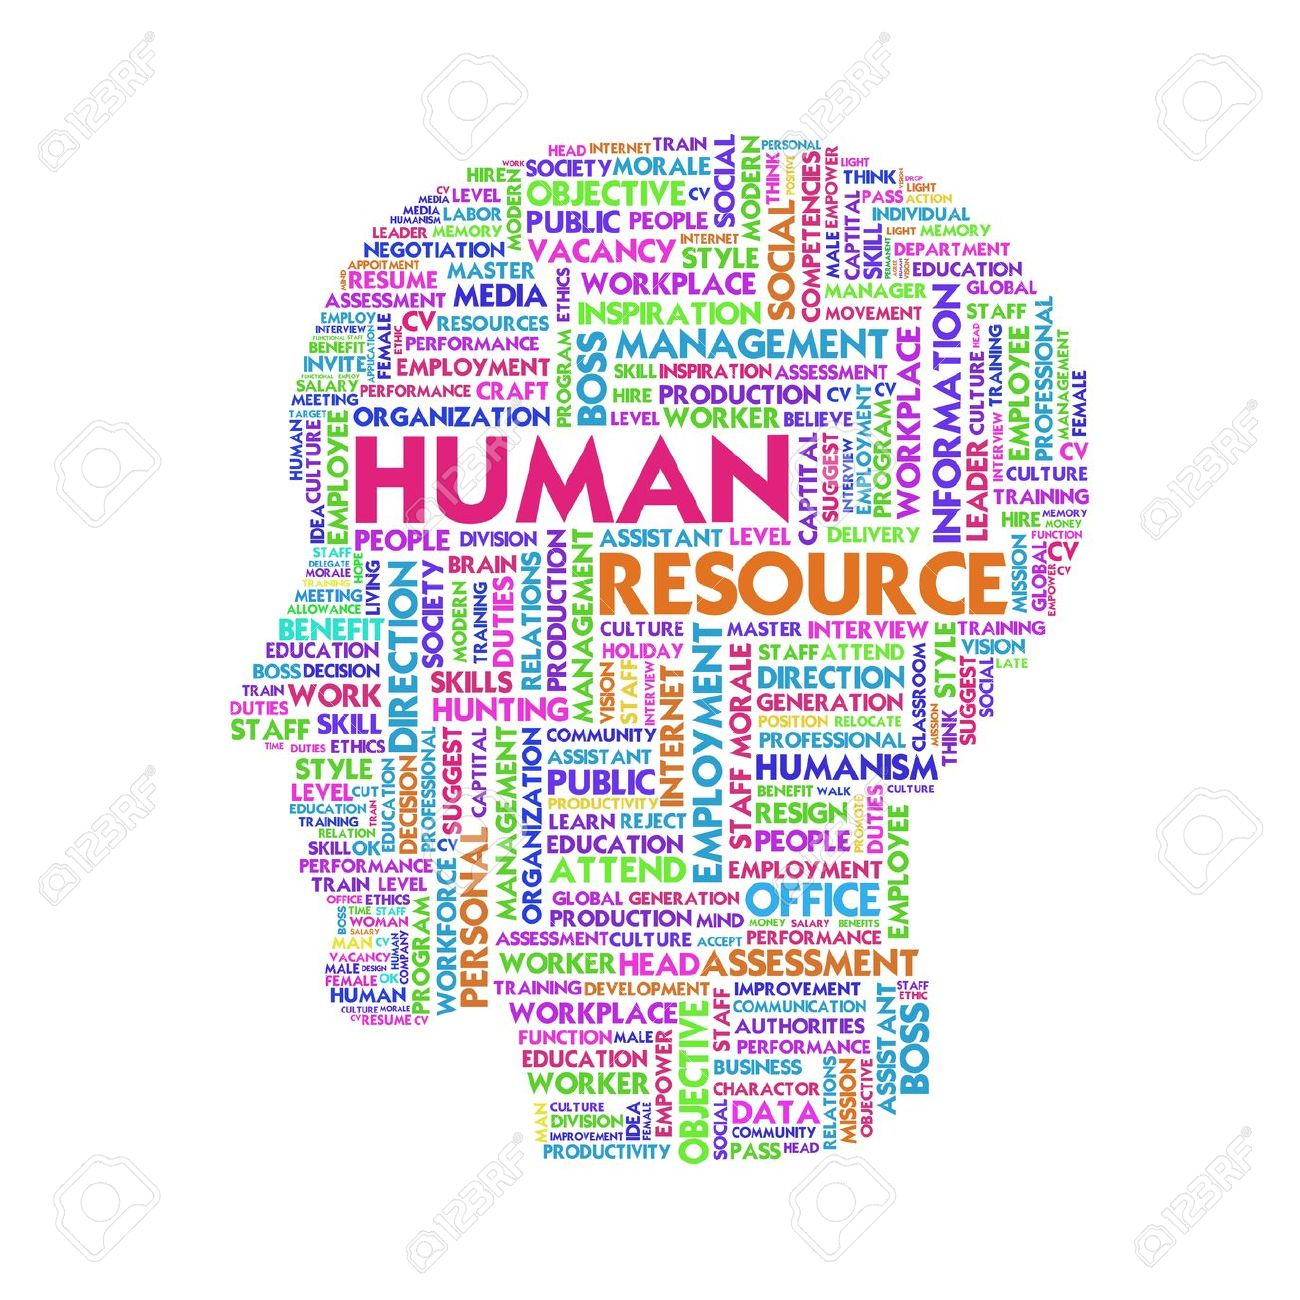 Human Resources: Human Resources Clipart & Look At Clip Art Images